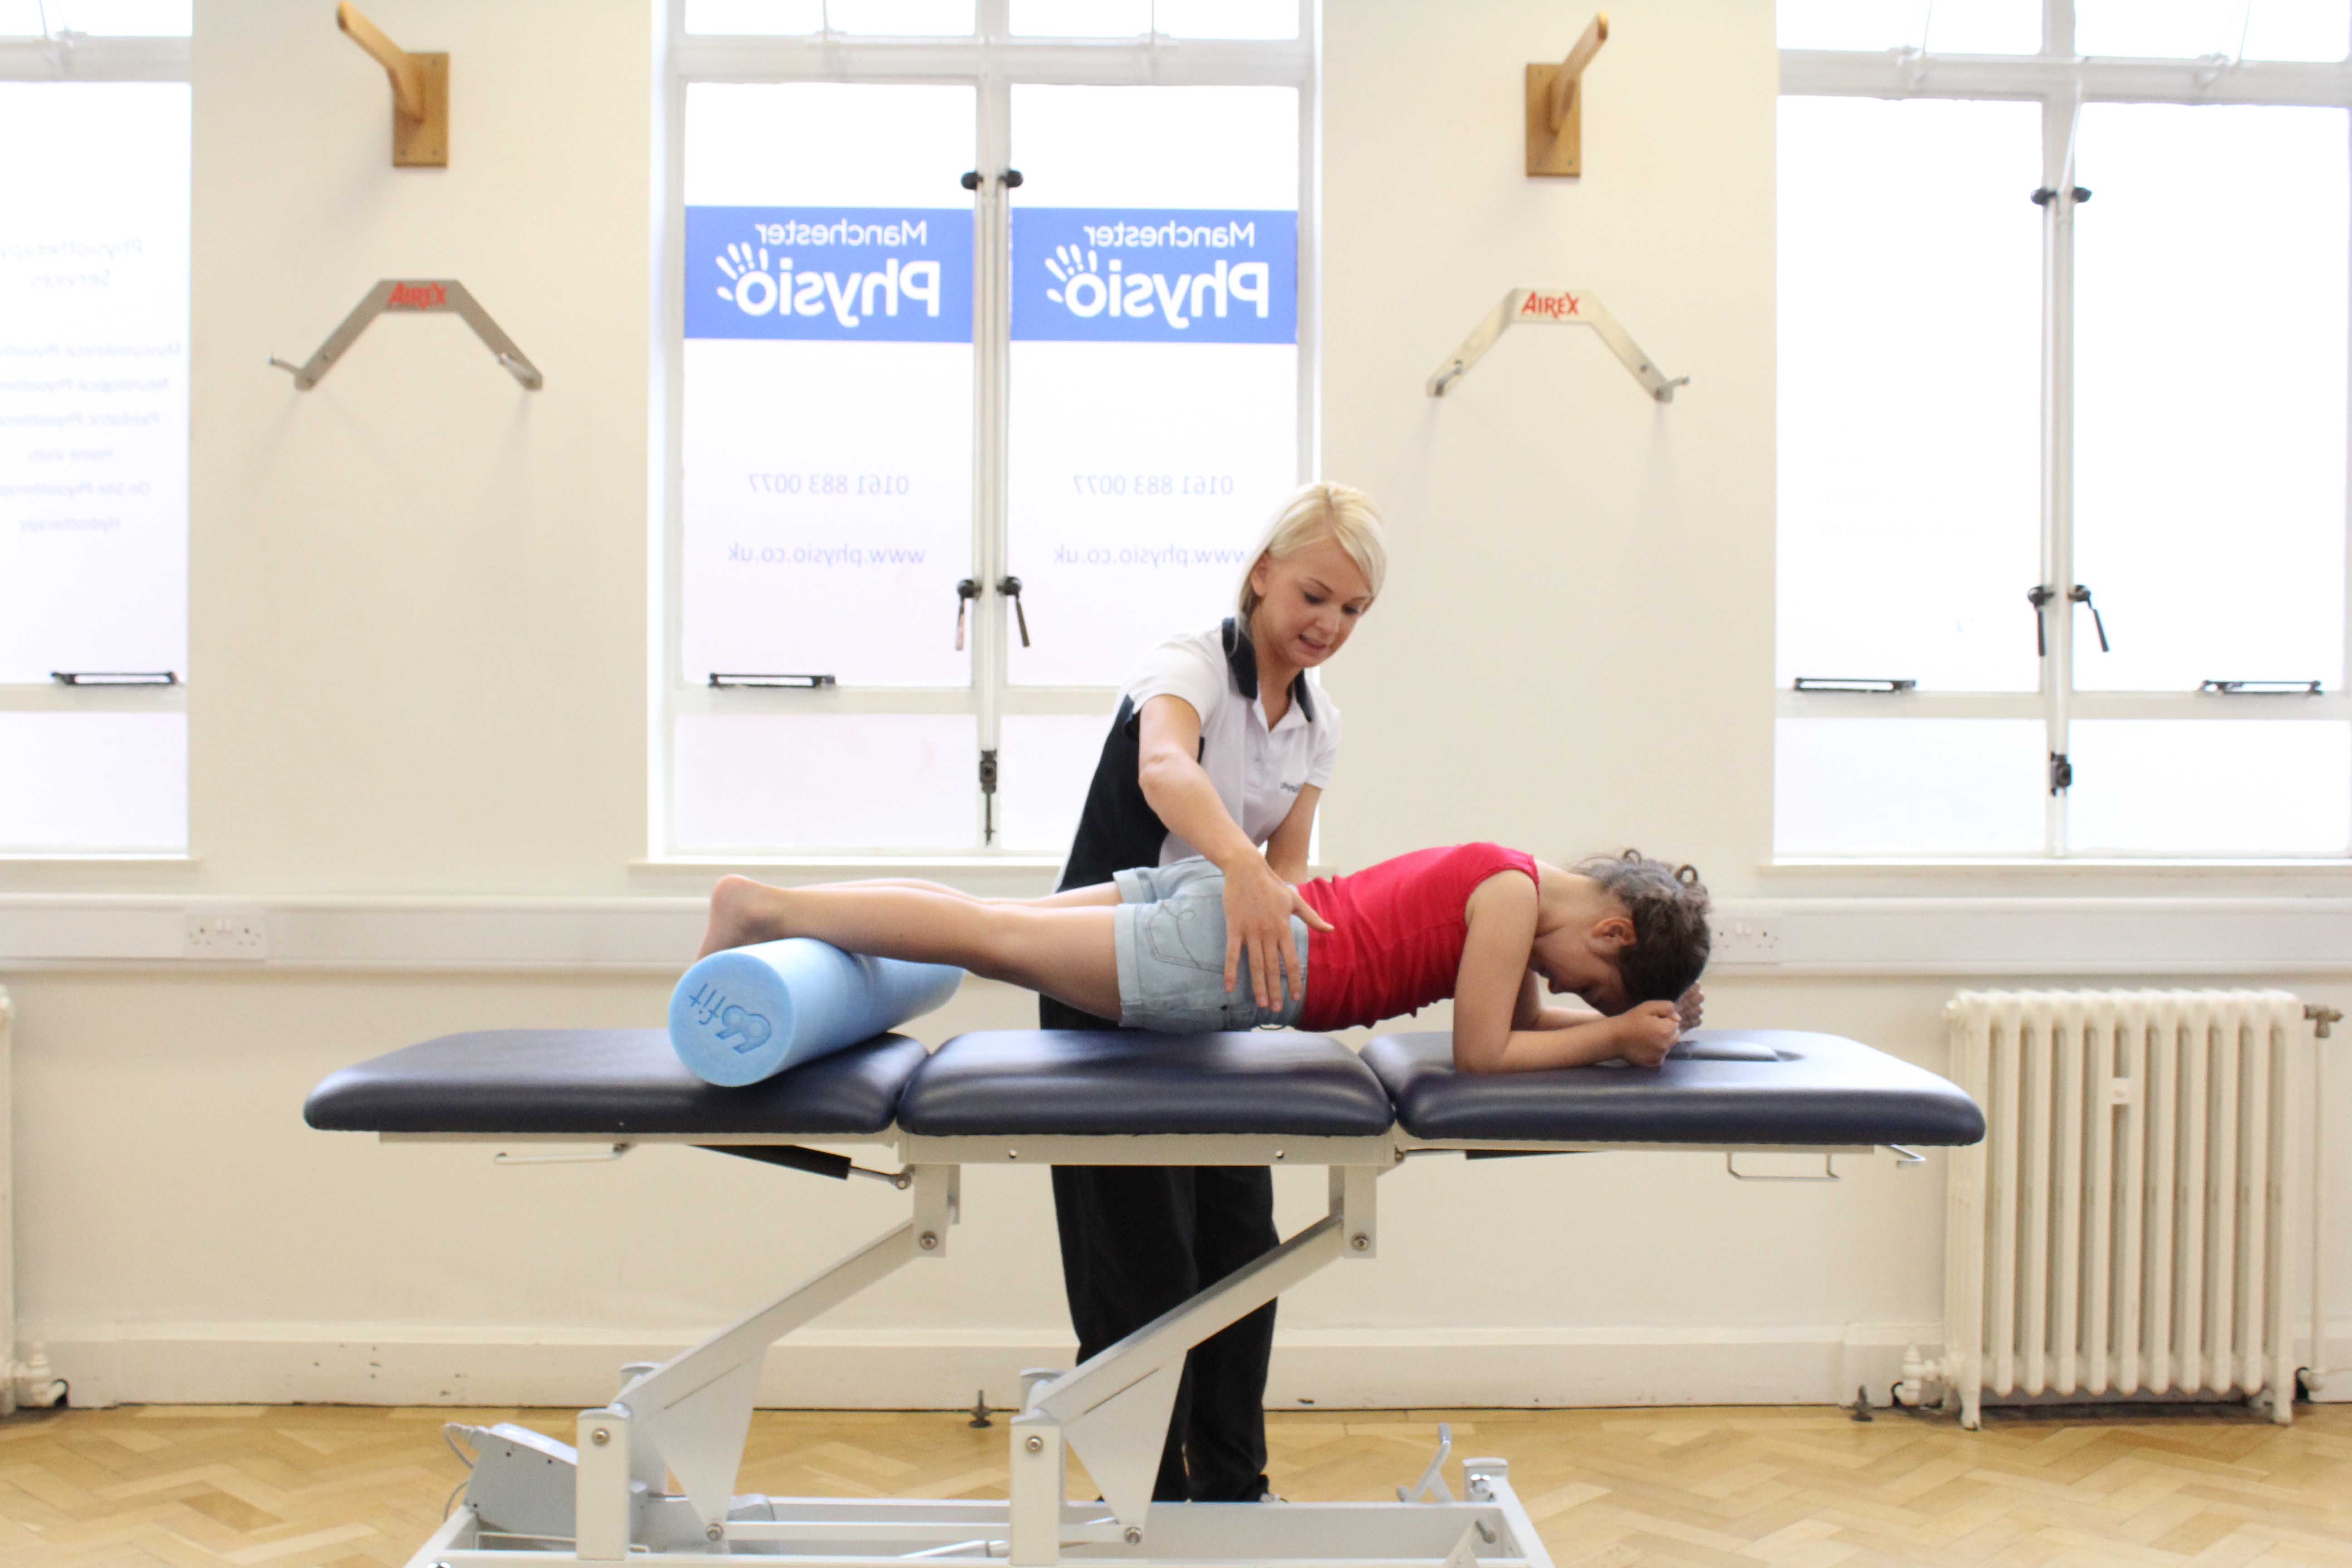 Planking exercise to raise tone in patient core muscles